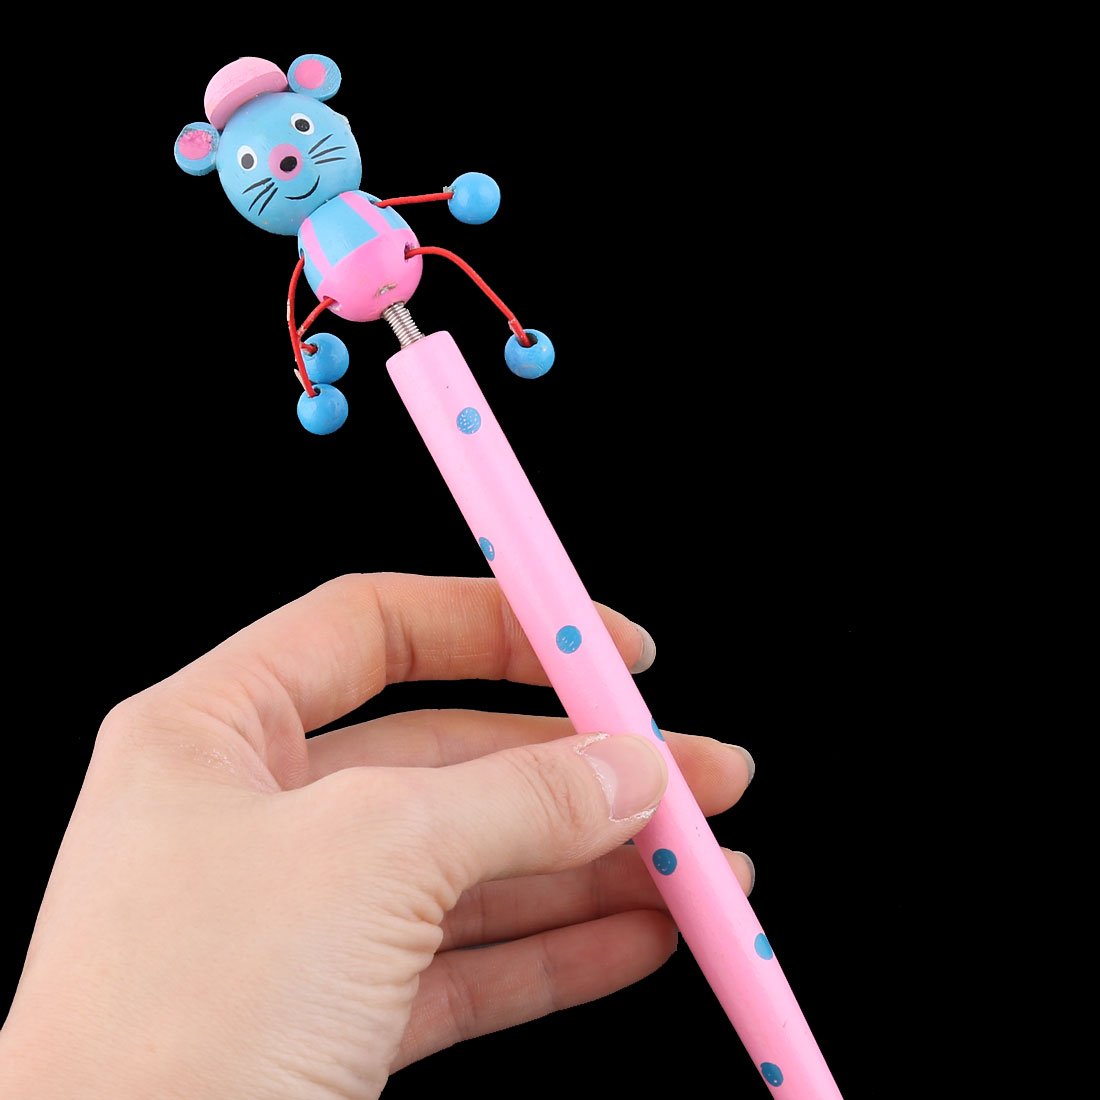 Cartoon Mouse Wooden Ball Point Pen with Spring Pink - image 2 de 3